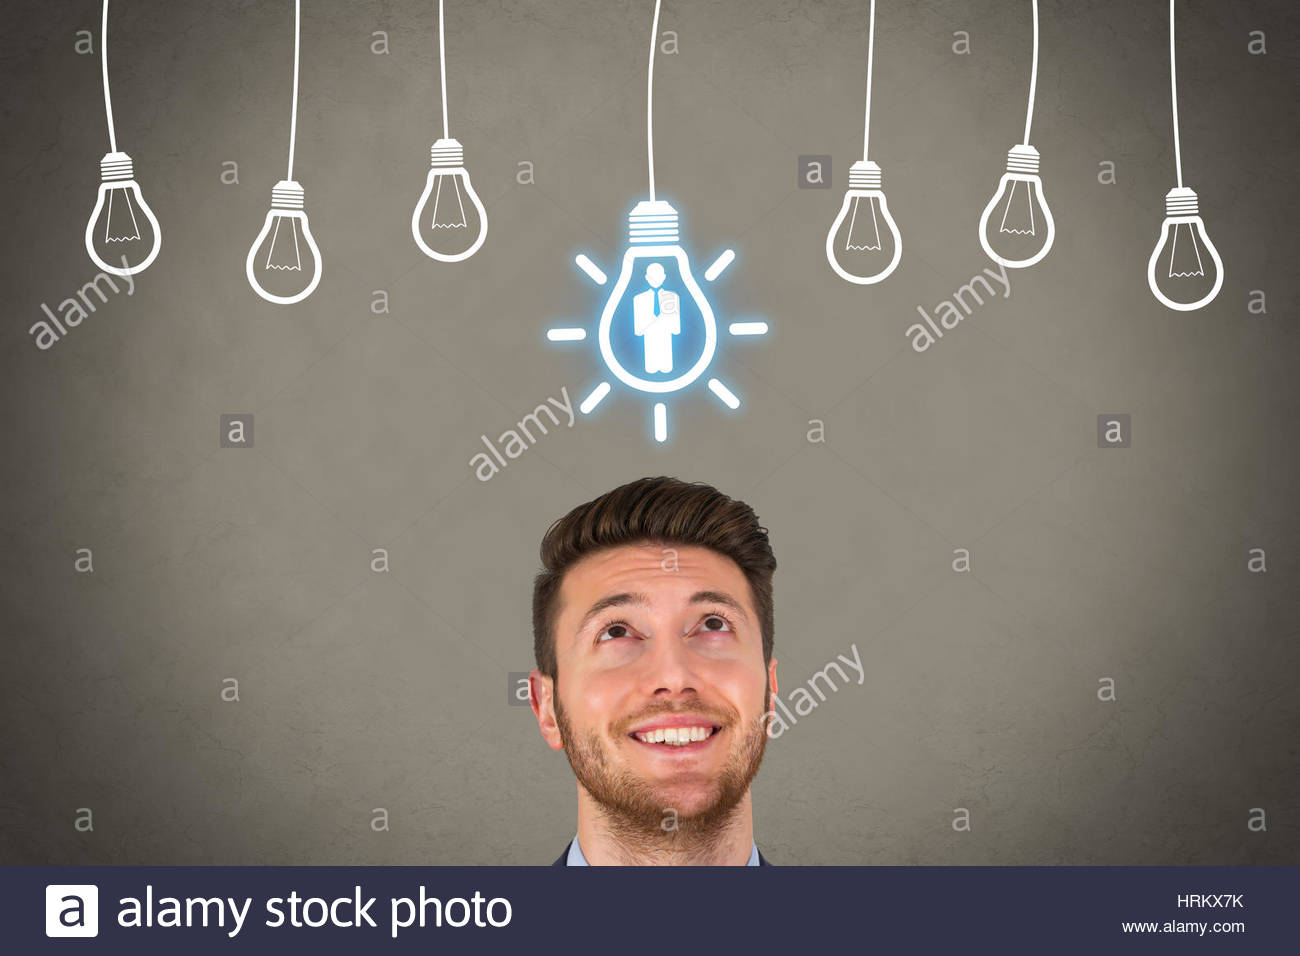 Recruitment and Idea over Human Head - Stock Image